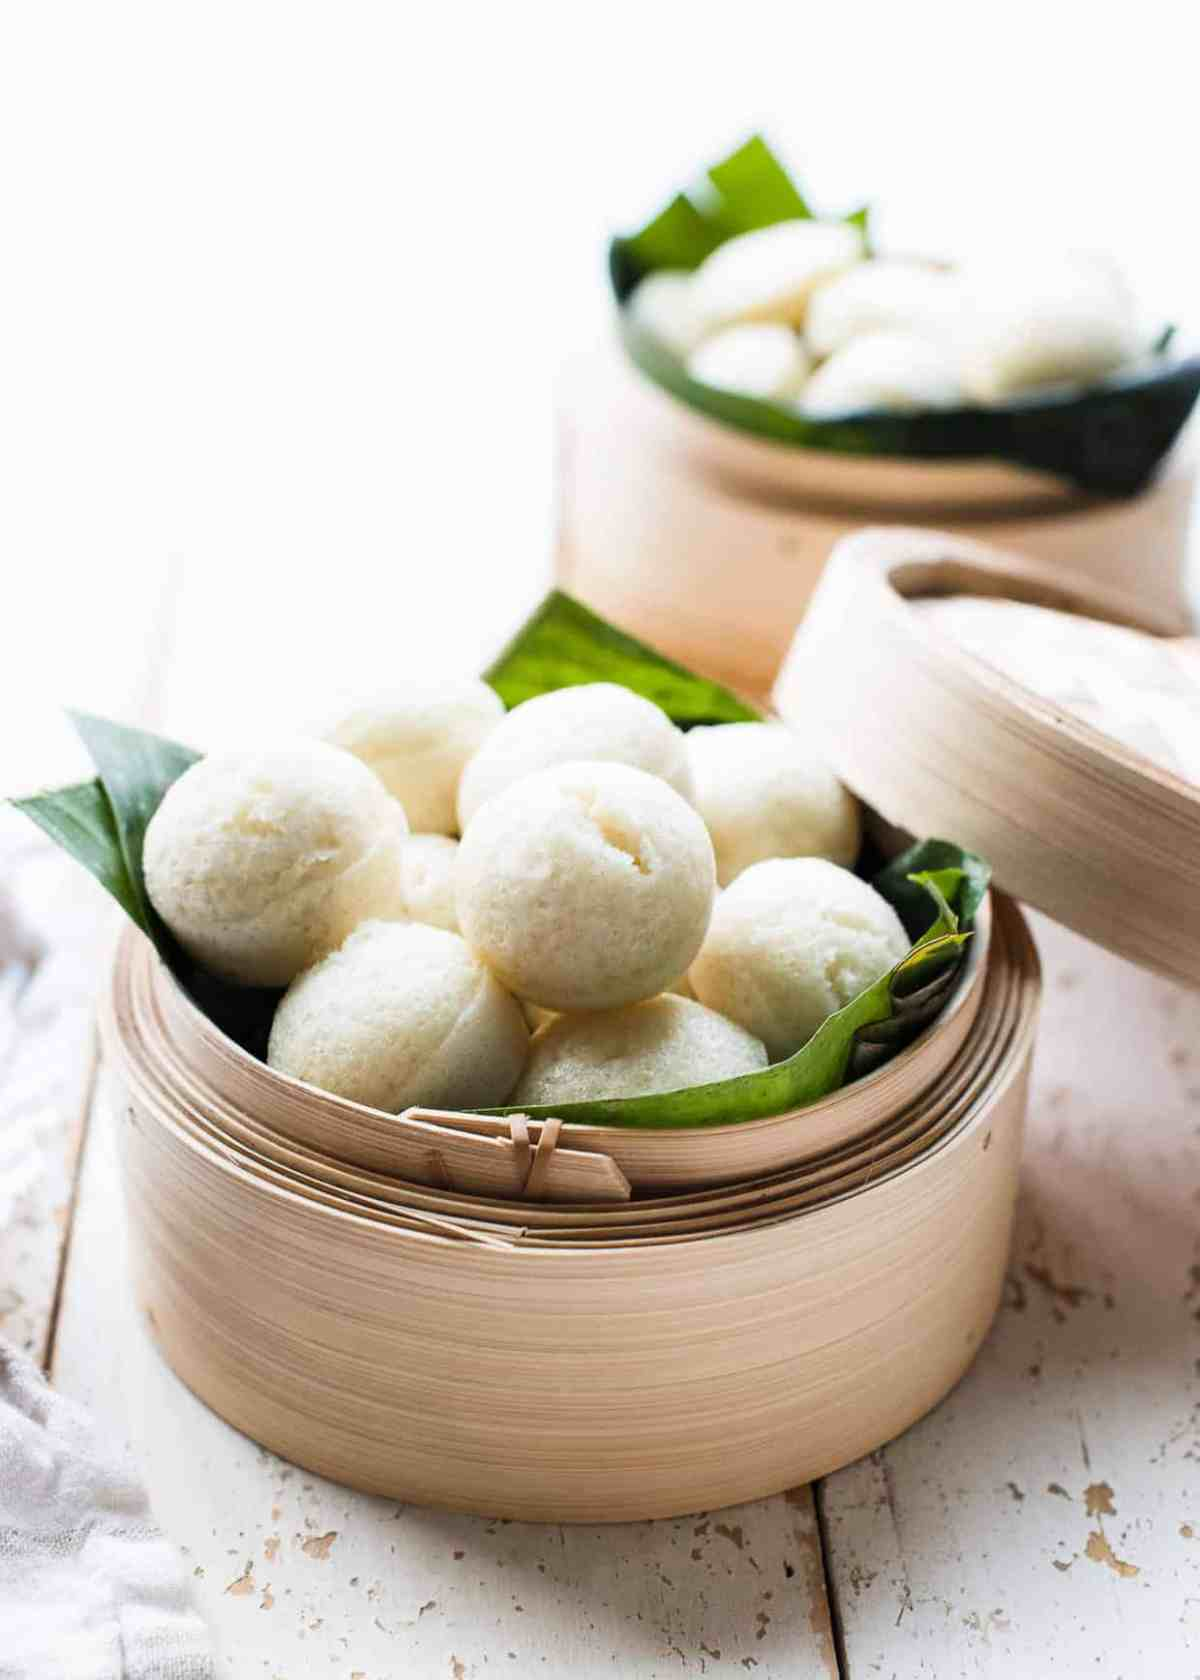 Puto - steamed rice cakes from the Philippines - in a bamboo steamer.